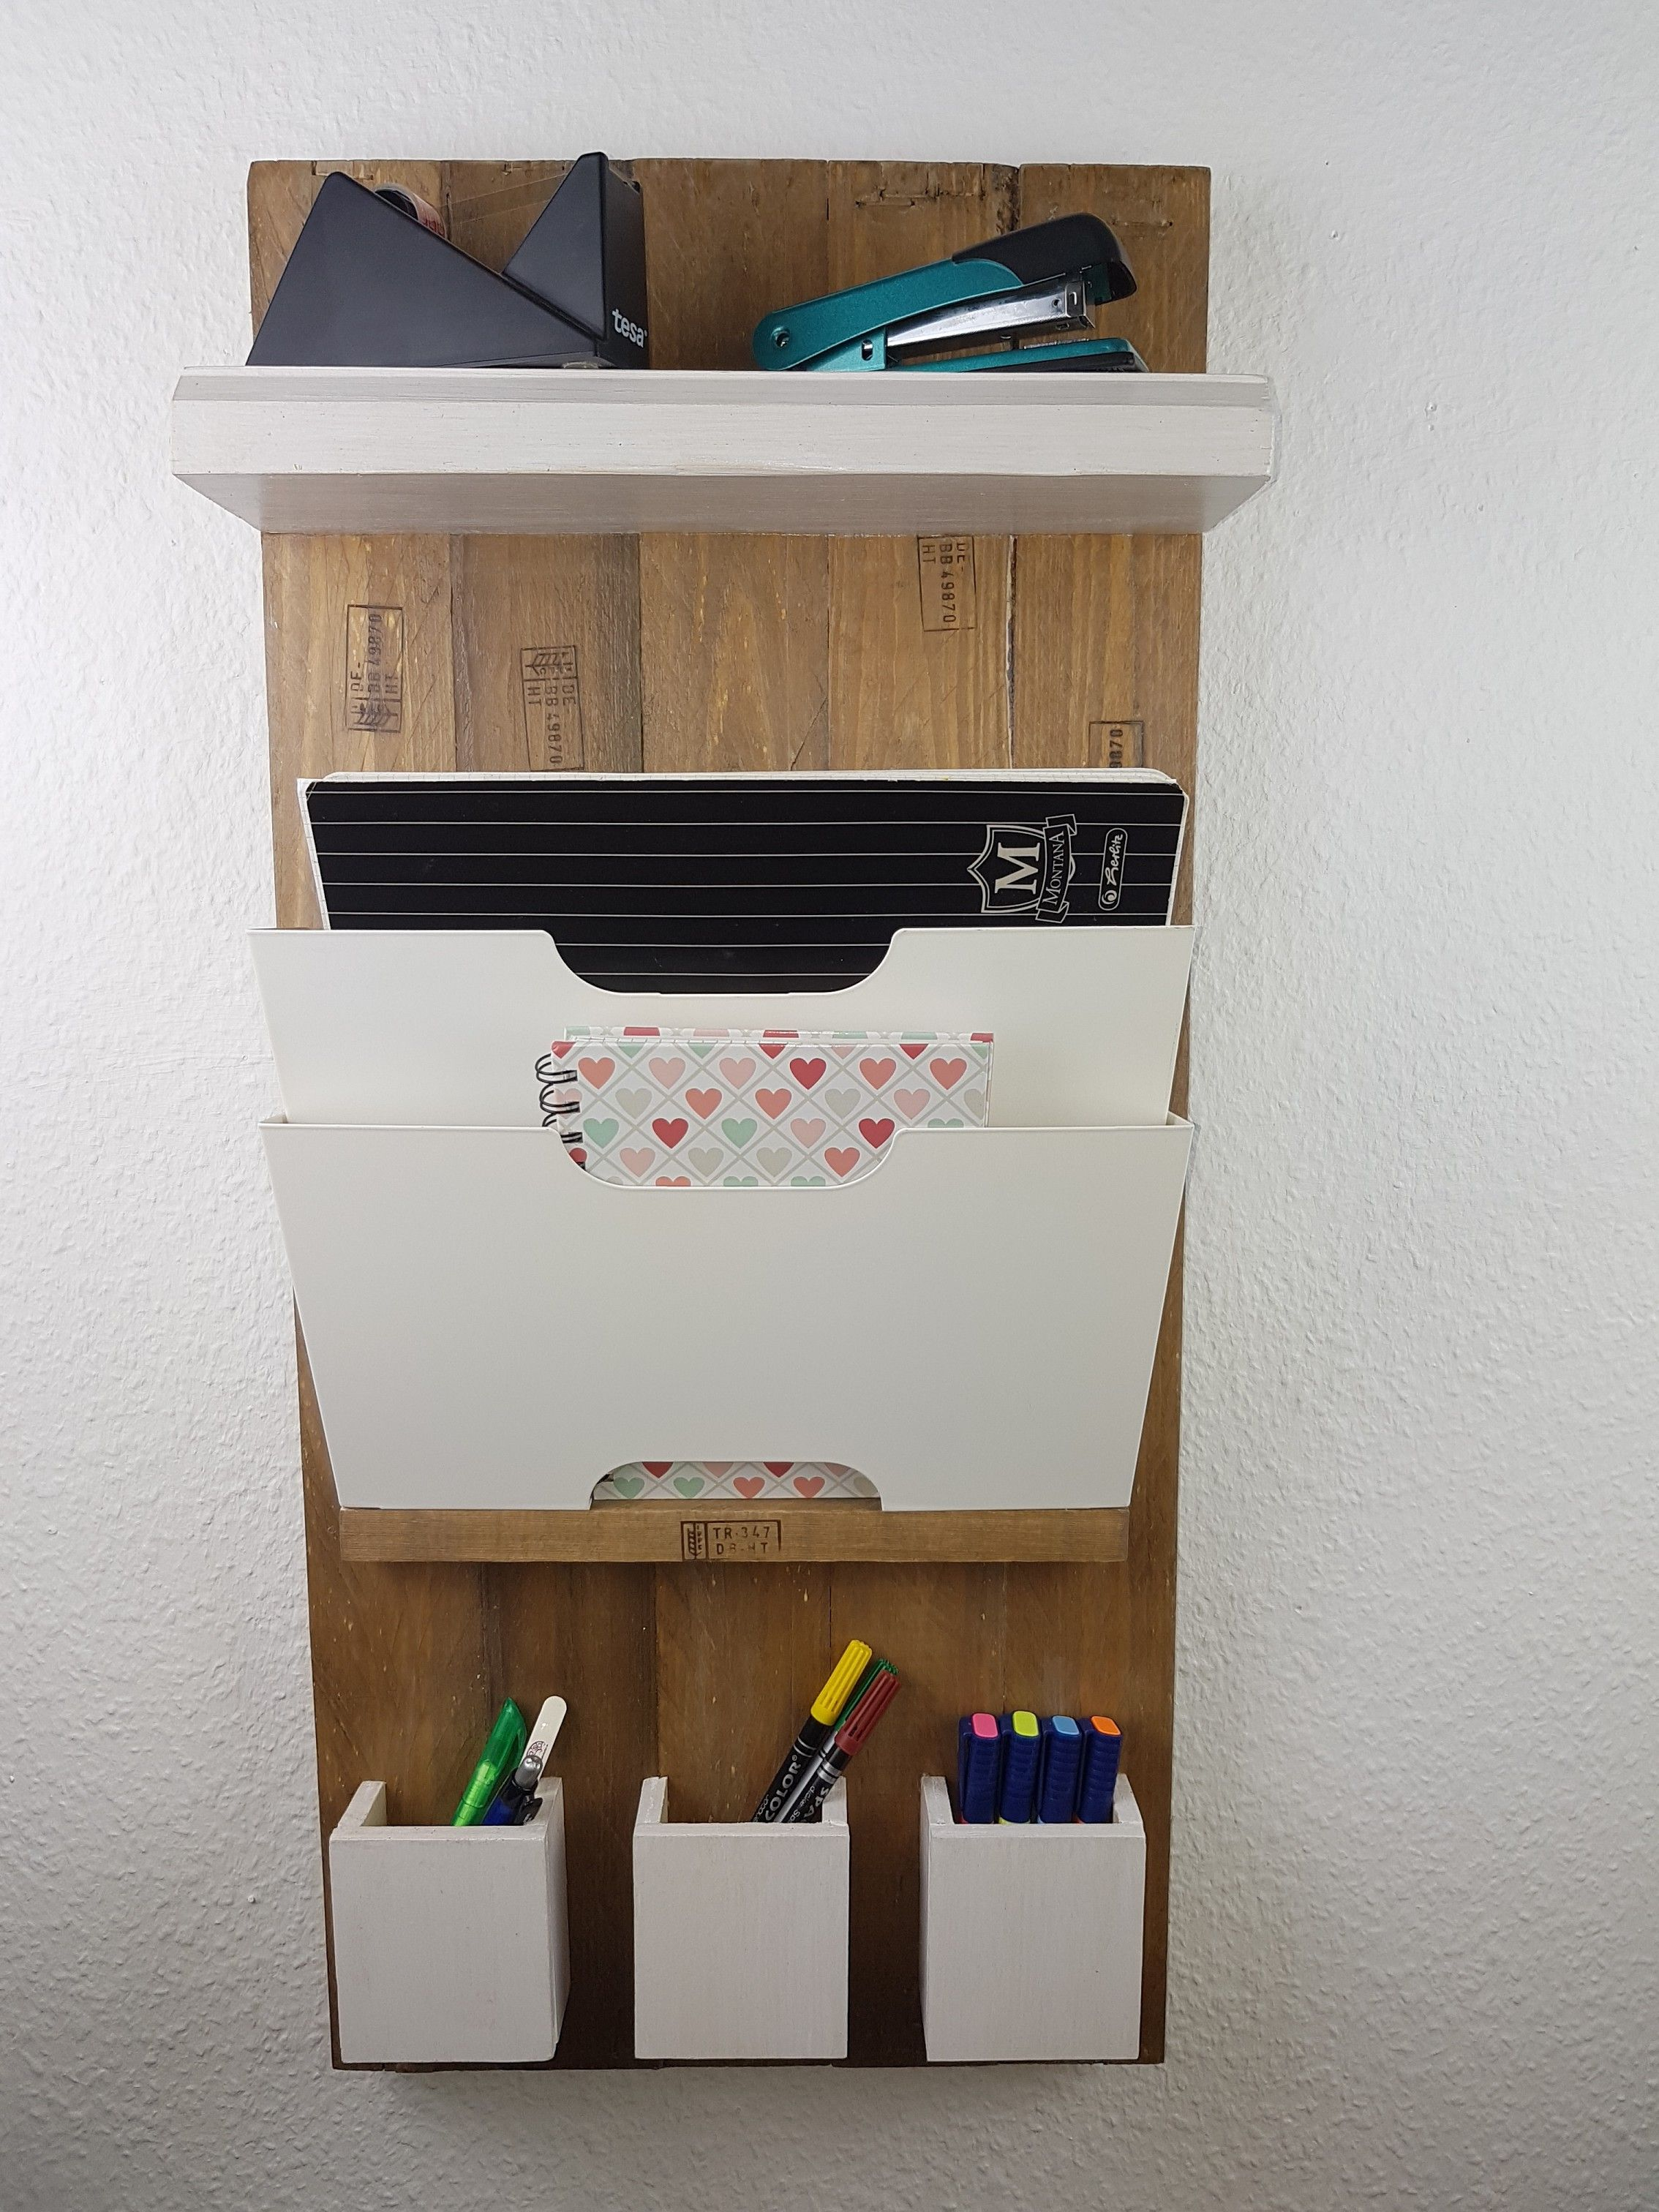 Wandregal Ordner Upcycling Organizer Wandregal Board Deko Upcycling